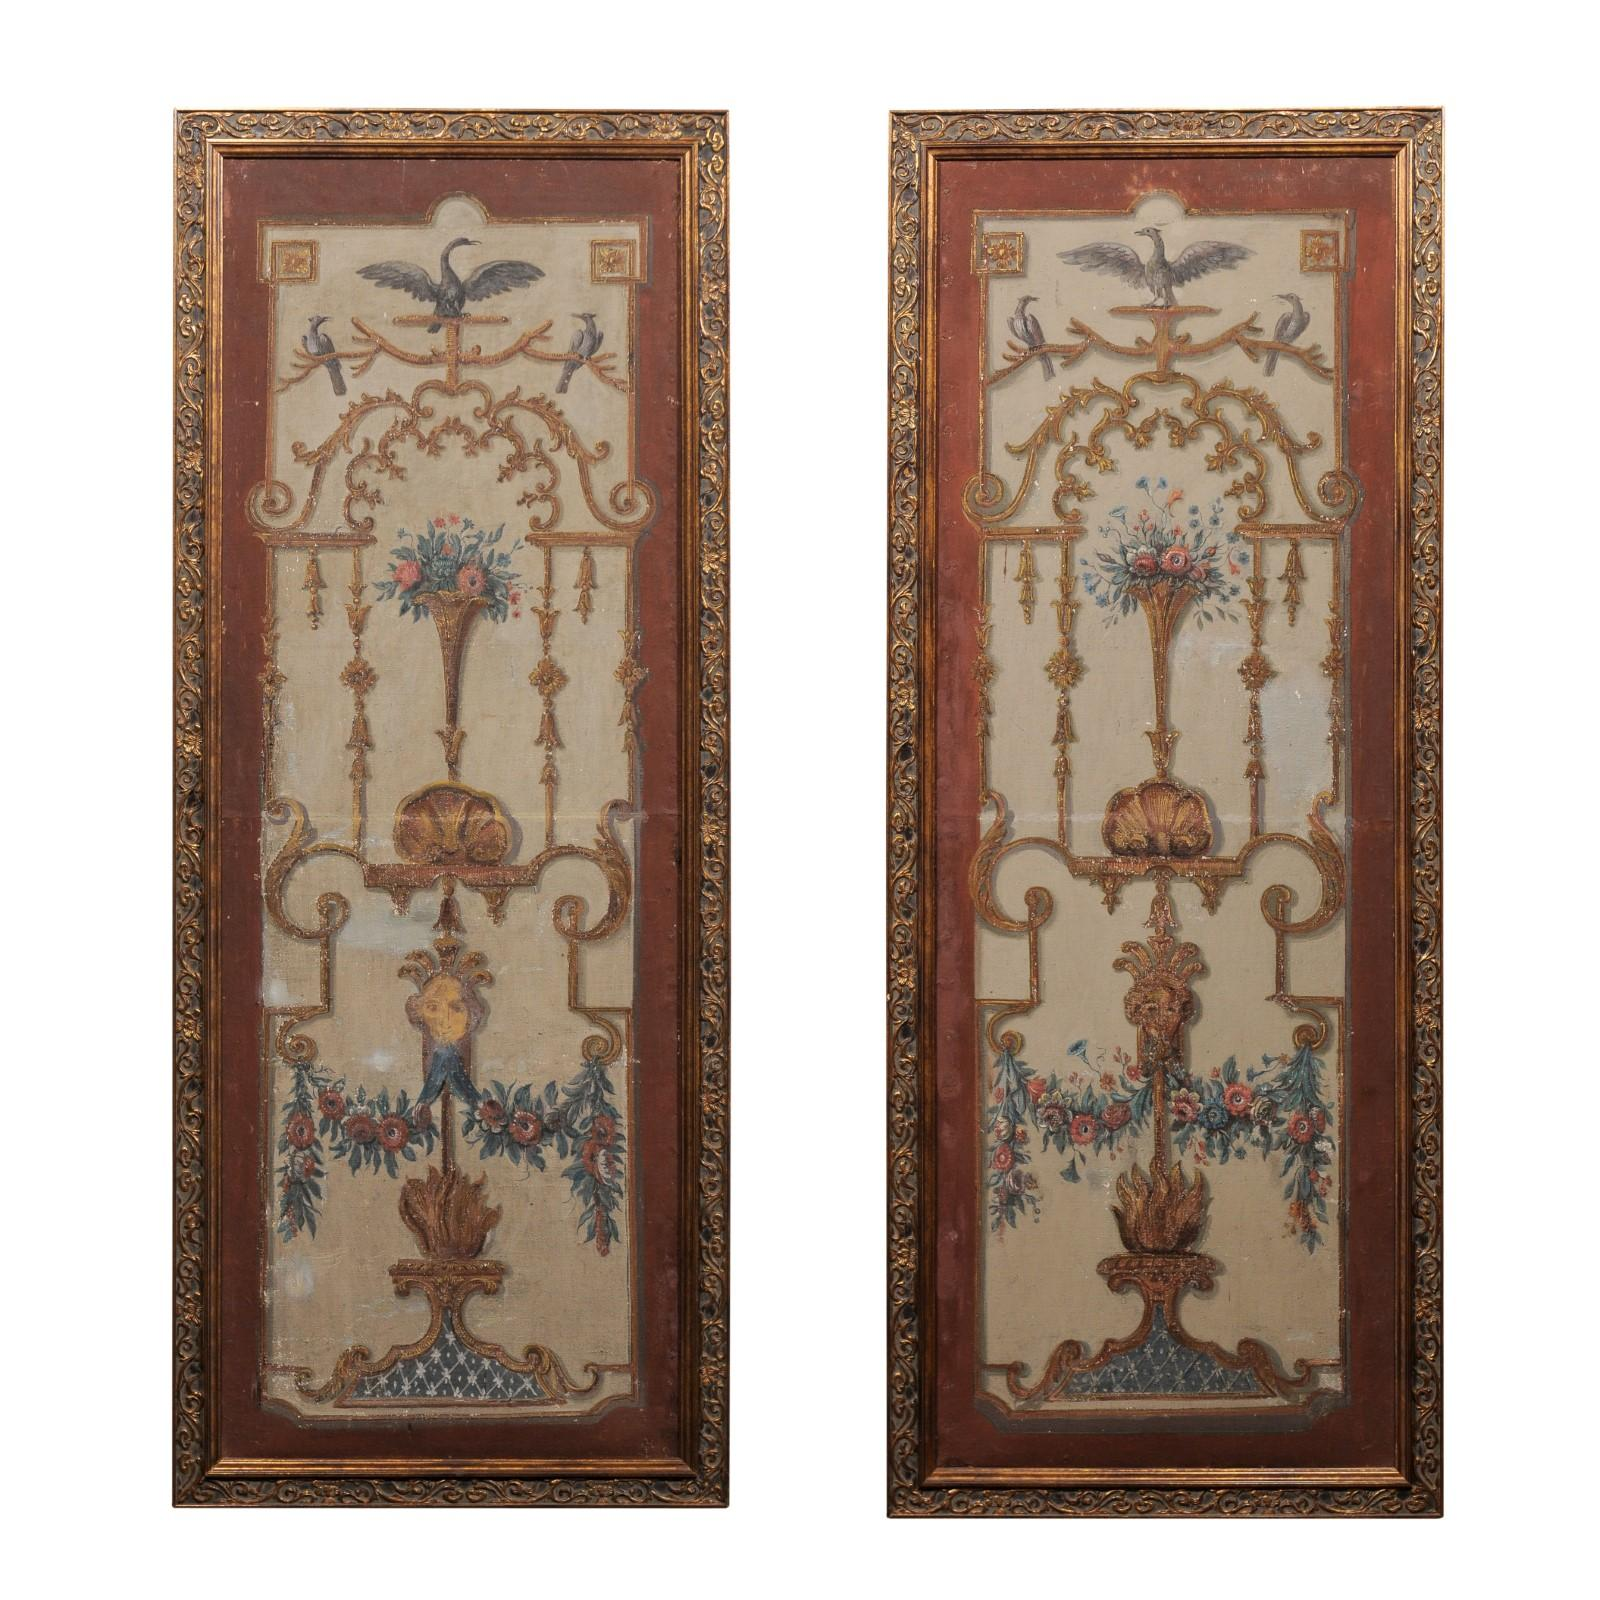 Pair of French Régence Period Early 18th Century Decorative Framed Wall Panels